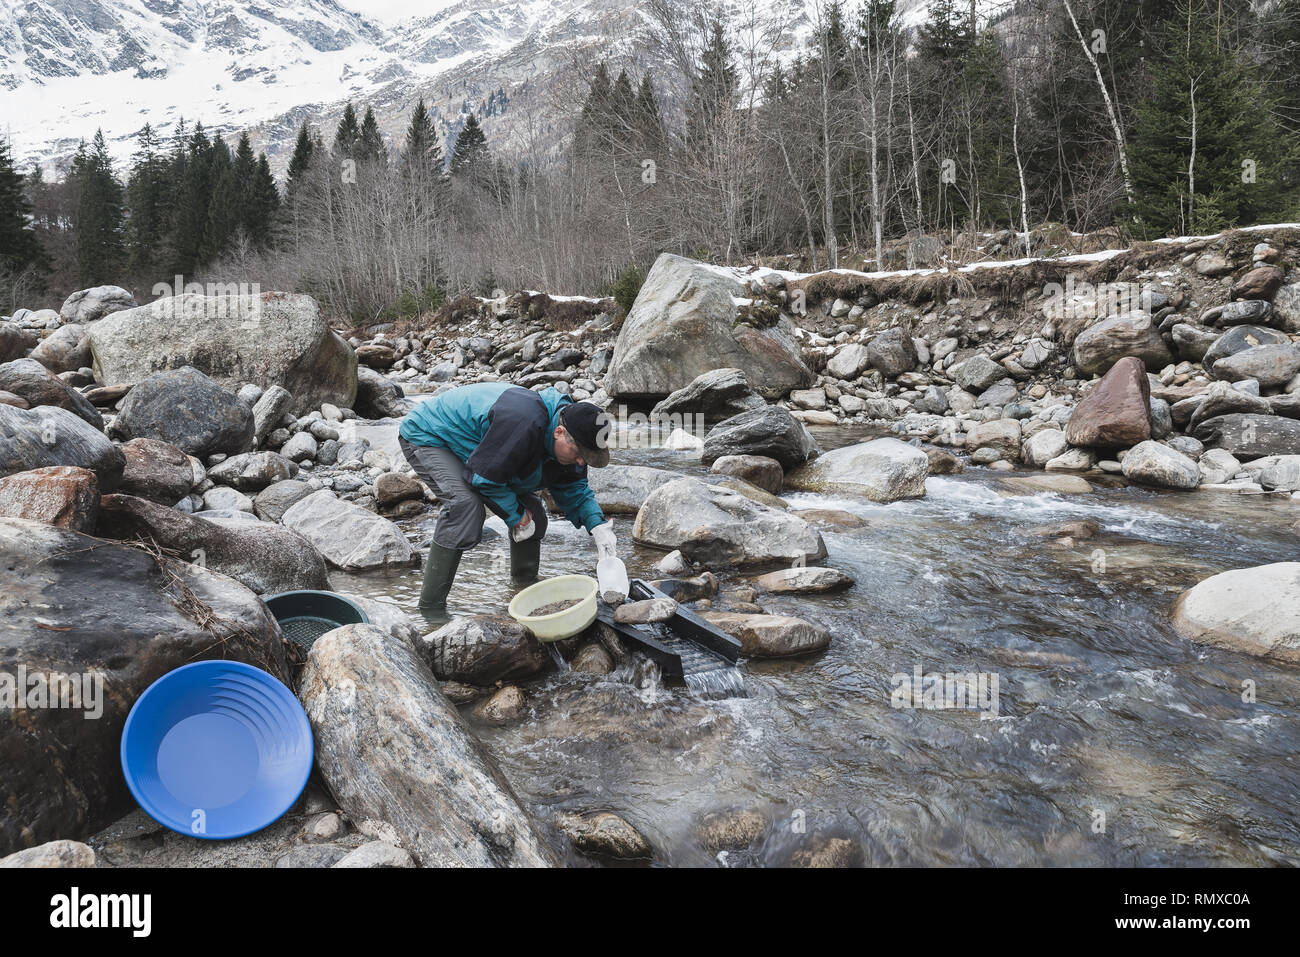 Adventures on river. Alluvial gold prospector. Moody instagram effect - Stock Image